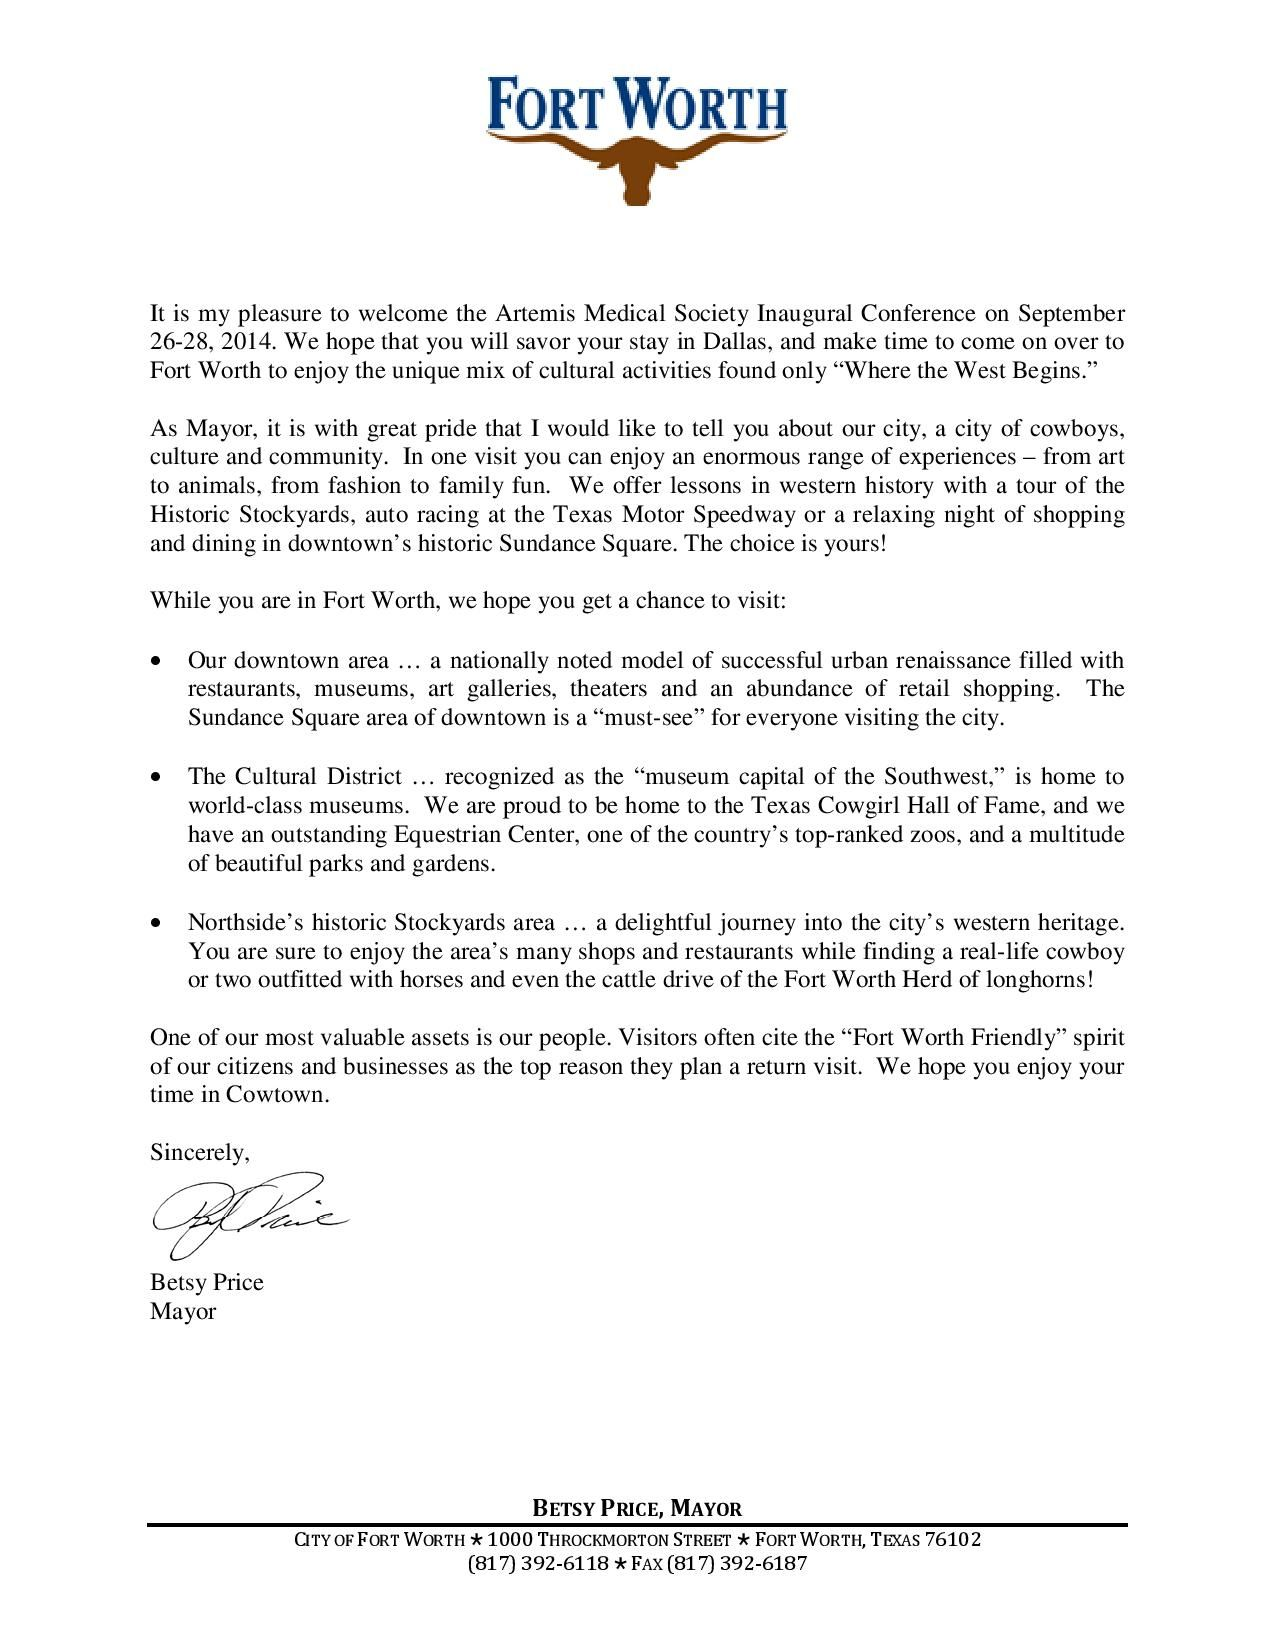 Welcome Letter From Fort Worth Mayor Betsy Price Artemis – Welcome Letter